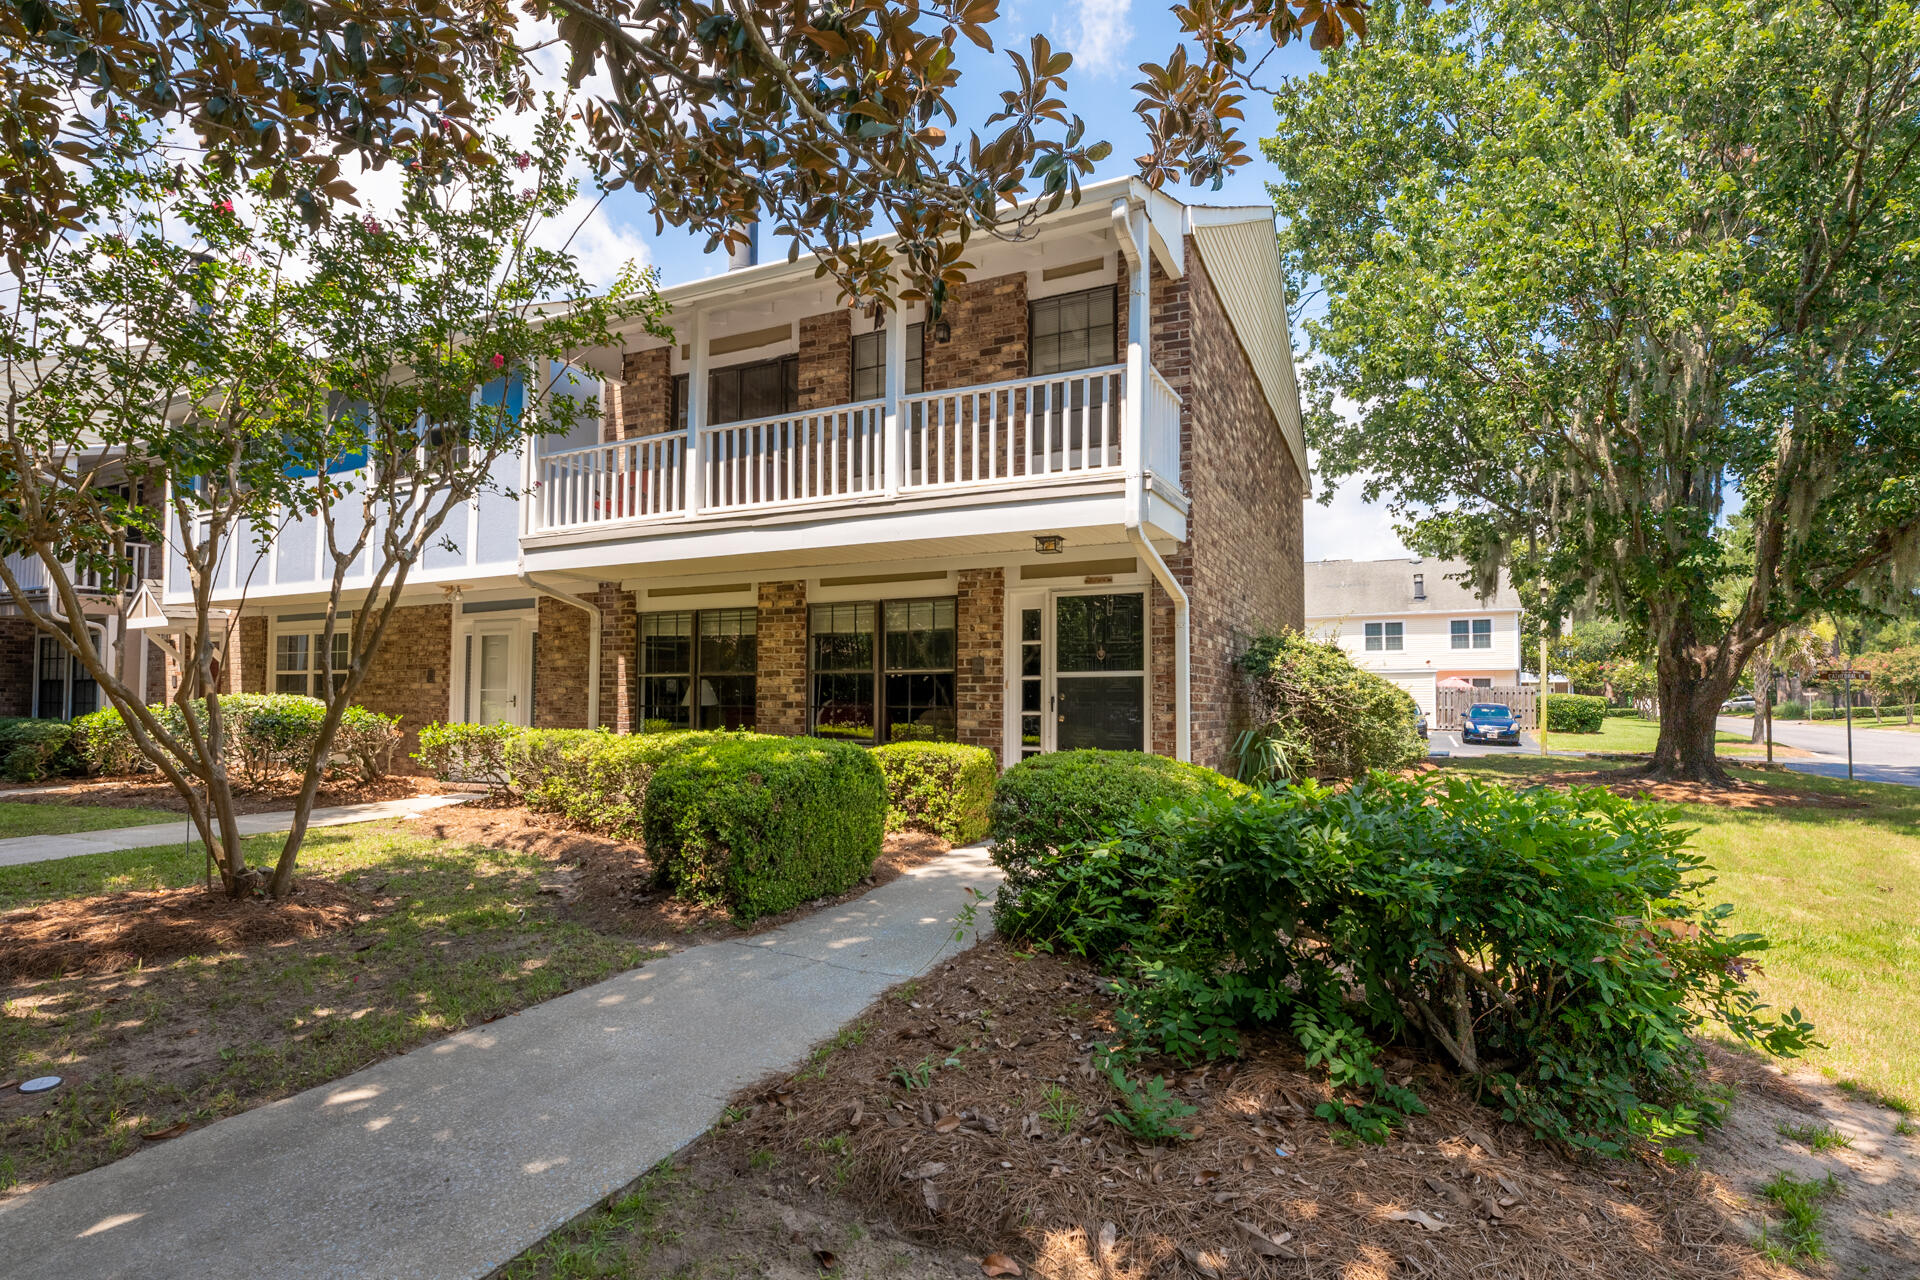 Old Towne Villas Homes For Sale - 2931 Cathedral, Charleston, SC - 1